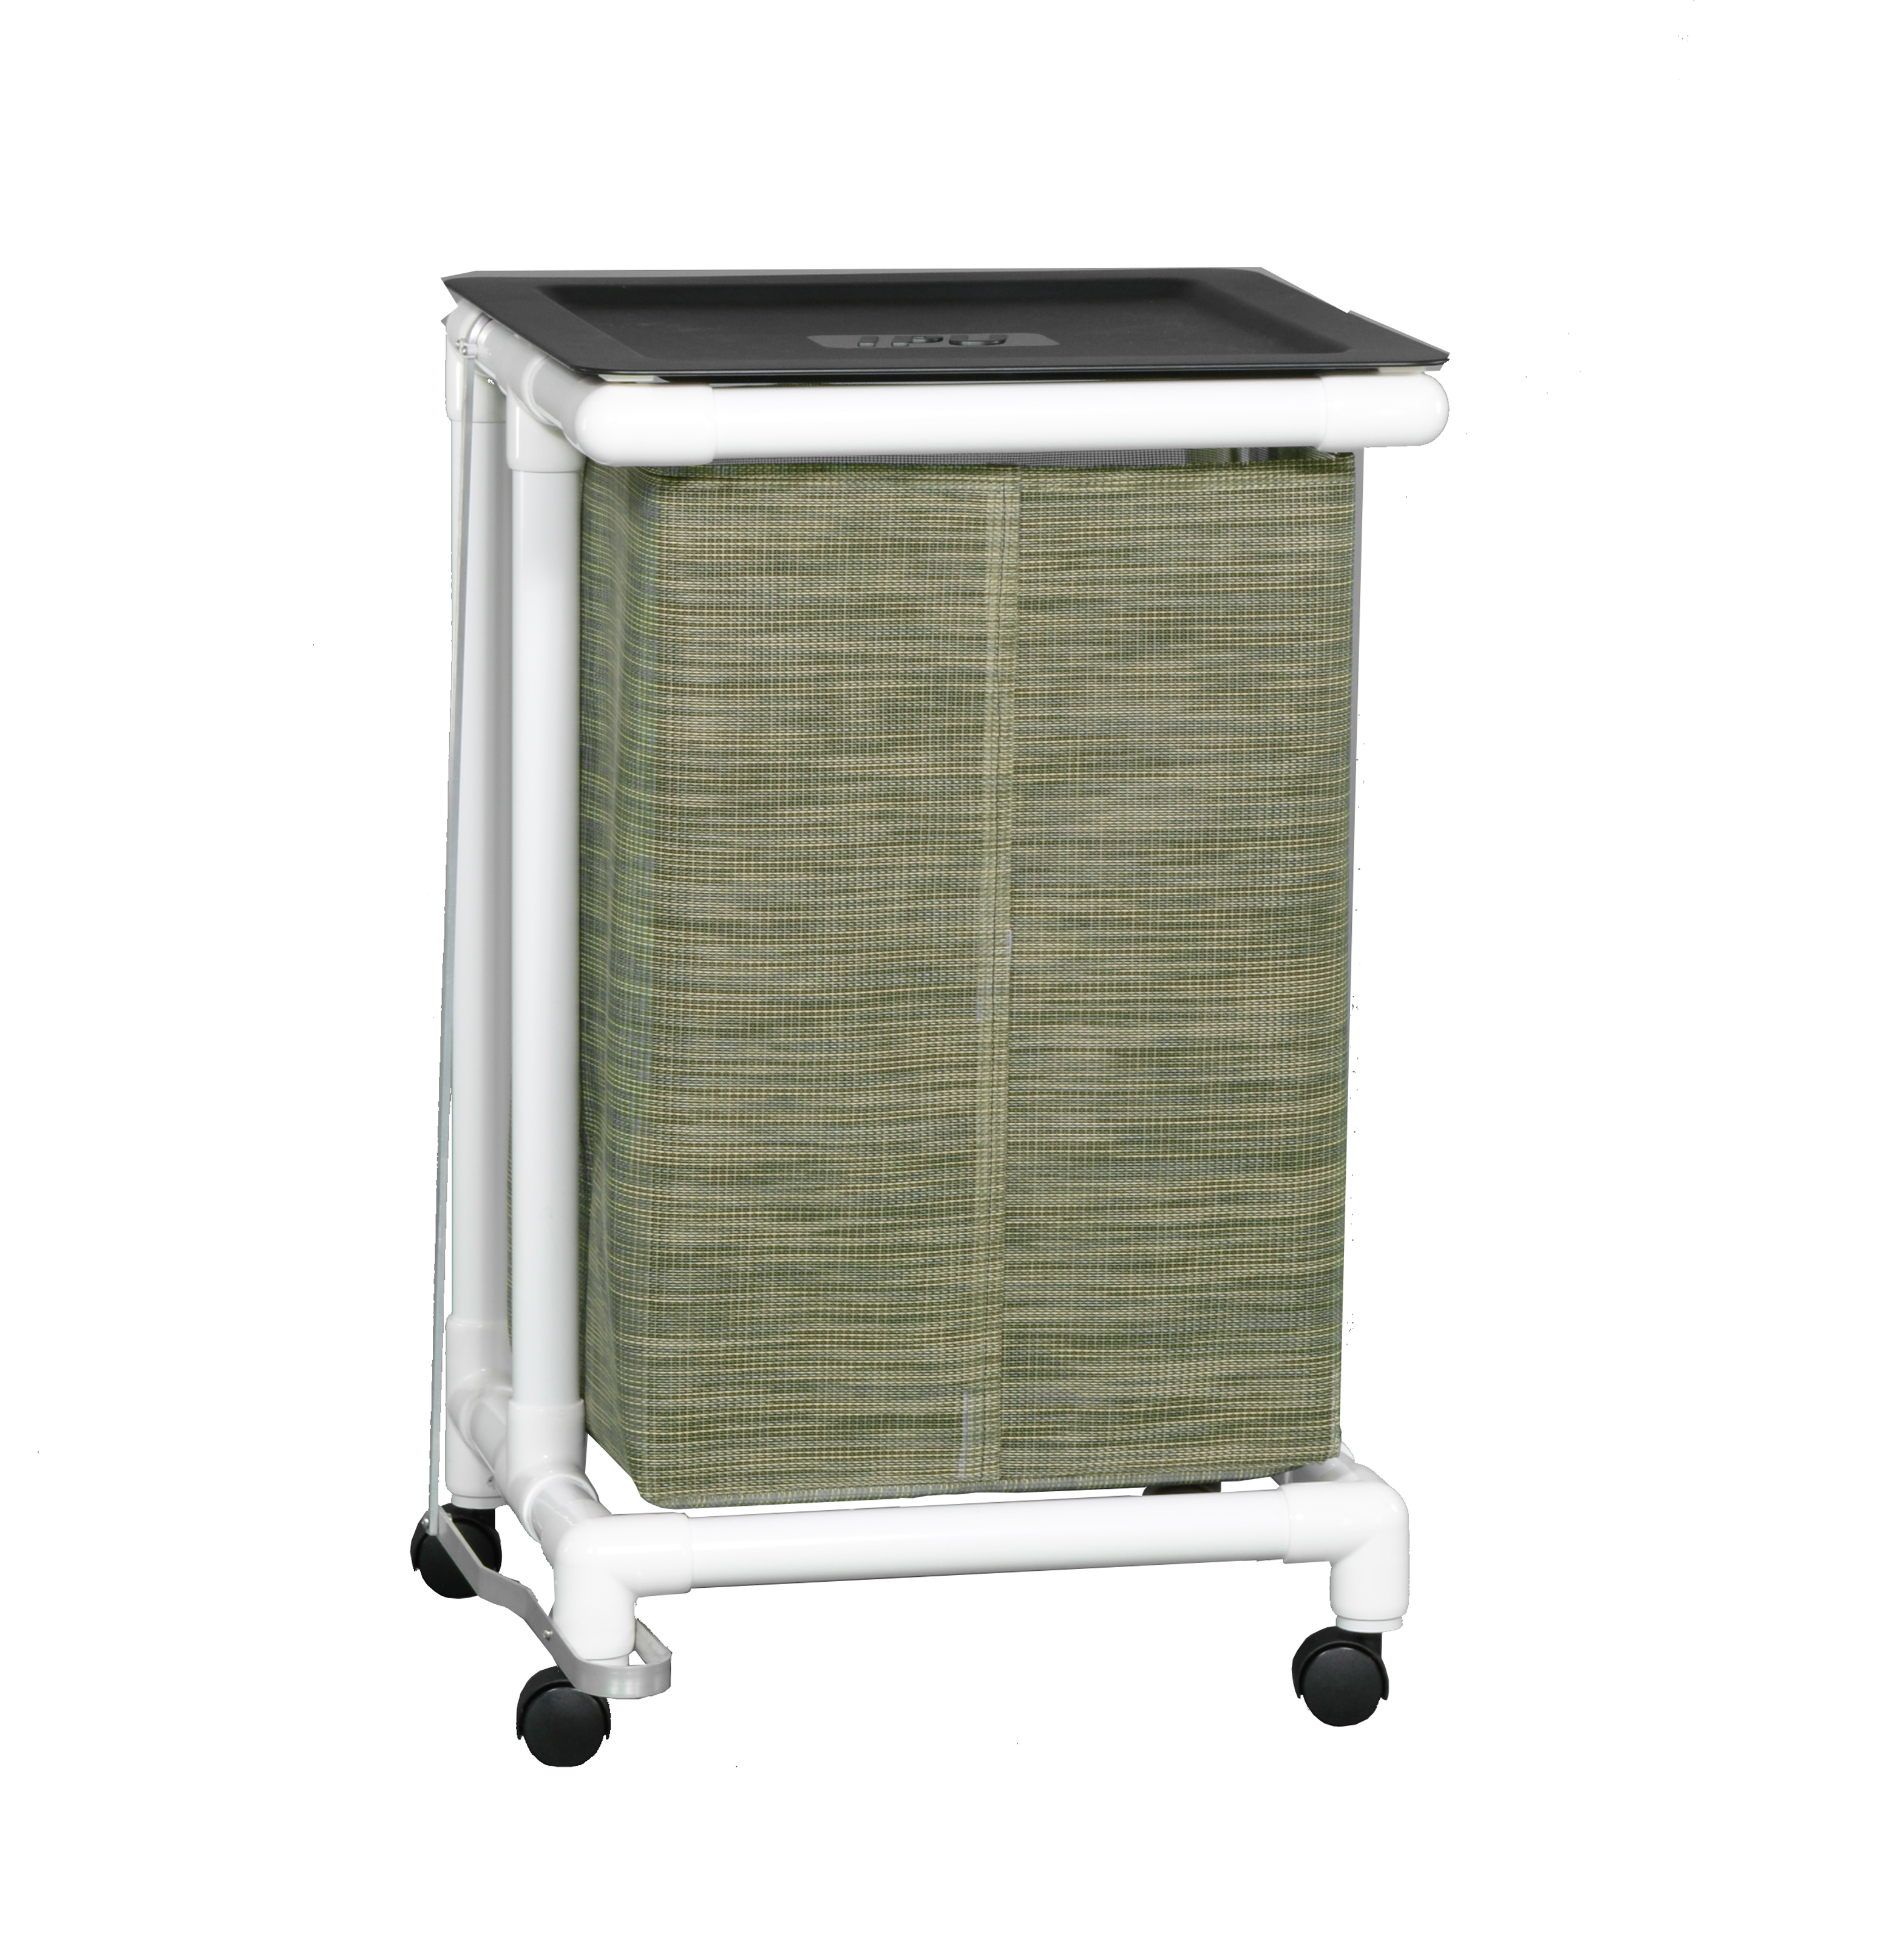 Standard Line Jumbo Hamper with Foot Pedals